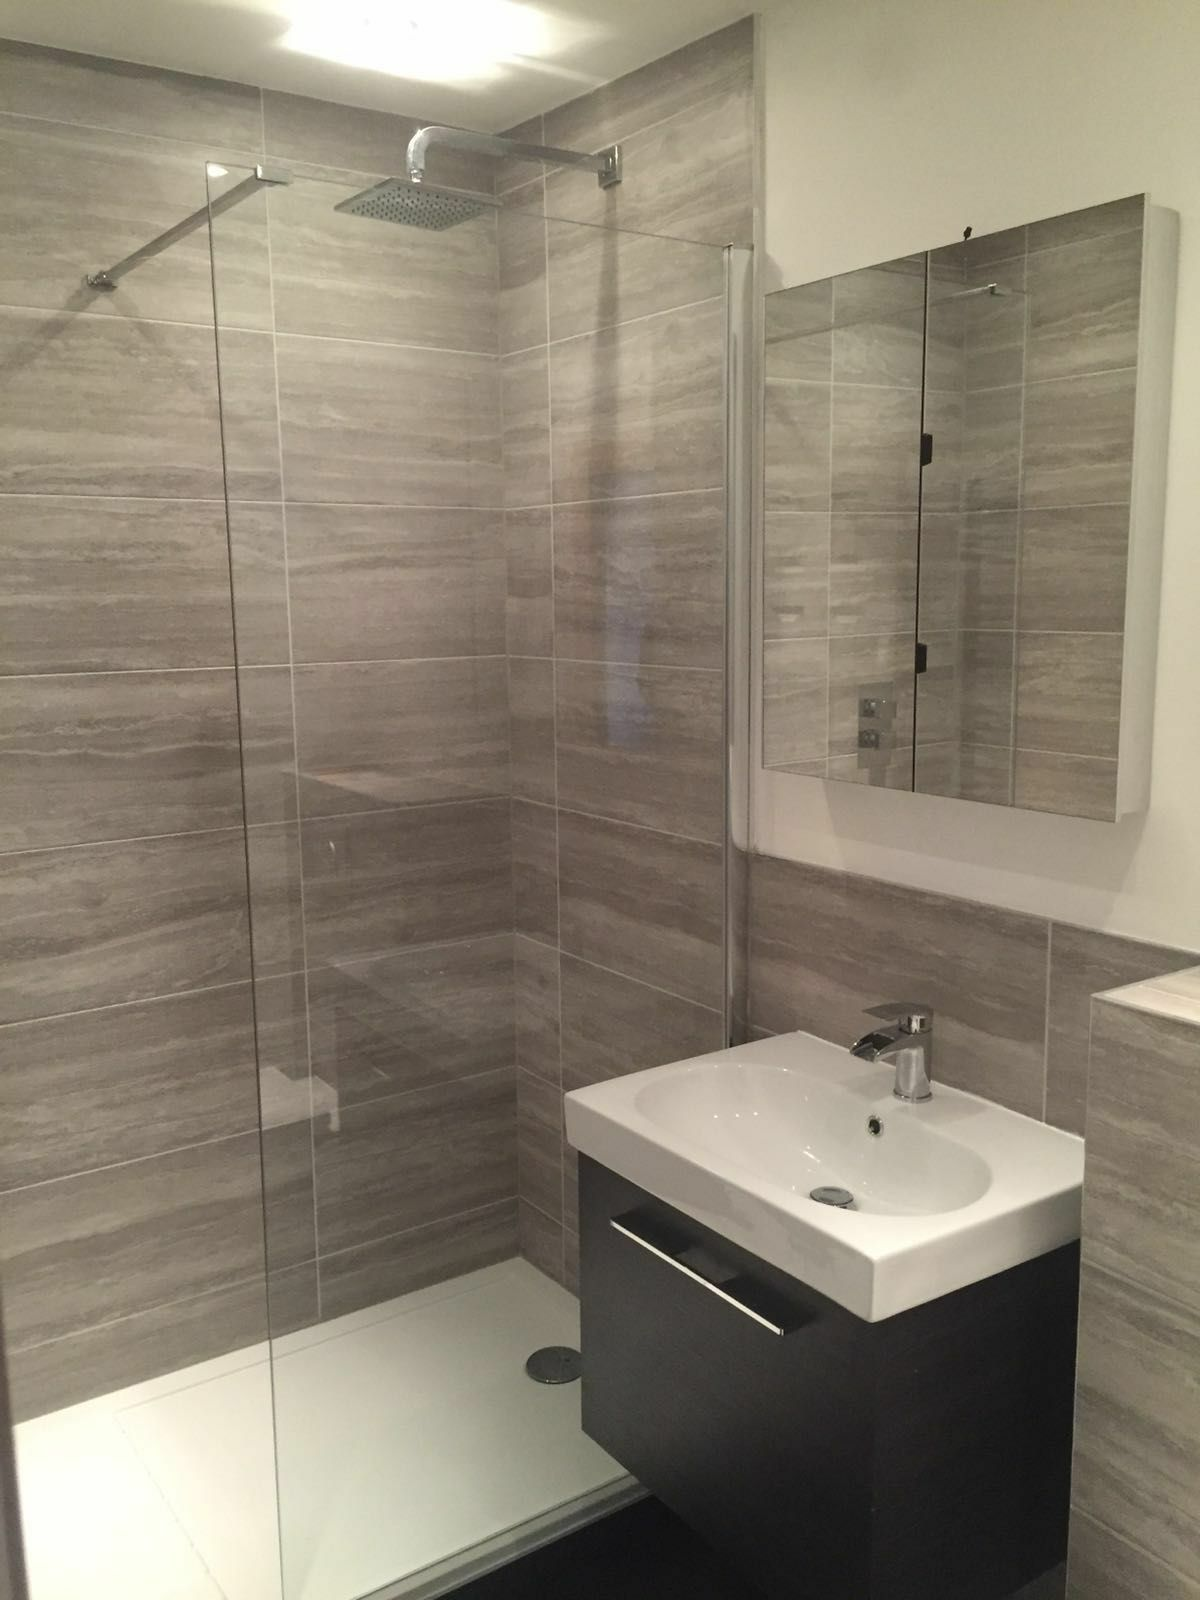 Peachy As You Can See Even Changes Made To Shower Area Alone We Haveimproved Bathroom By But We S Lichfield Ensuite Makeover Desire Bathroom Interiors houzz-03 En Suite Bathroom